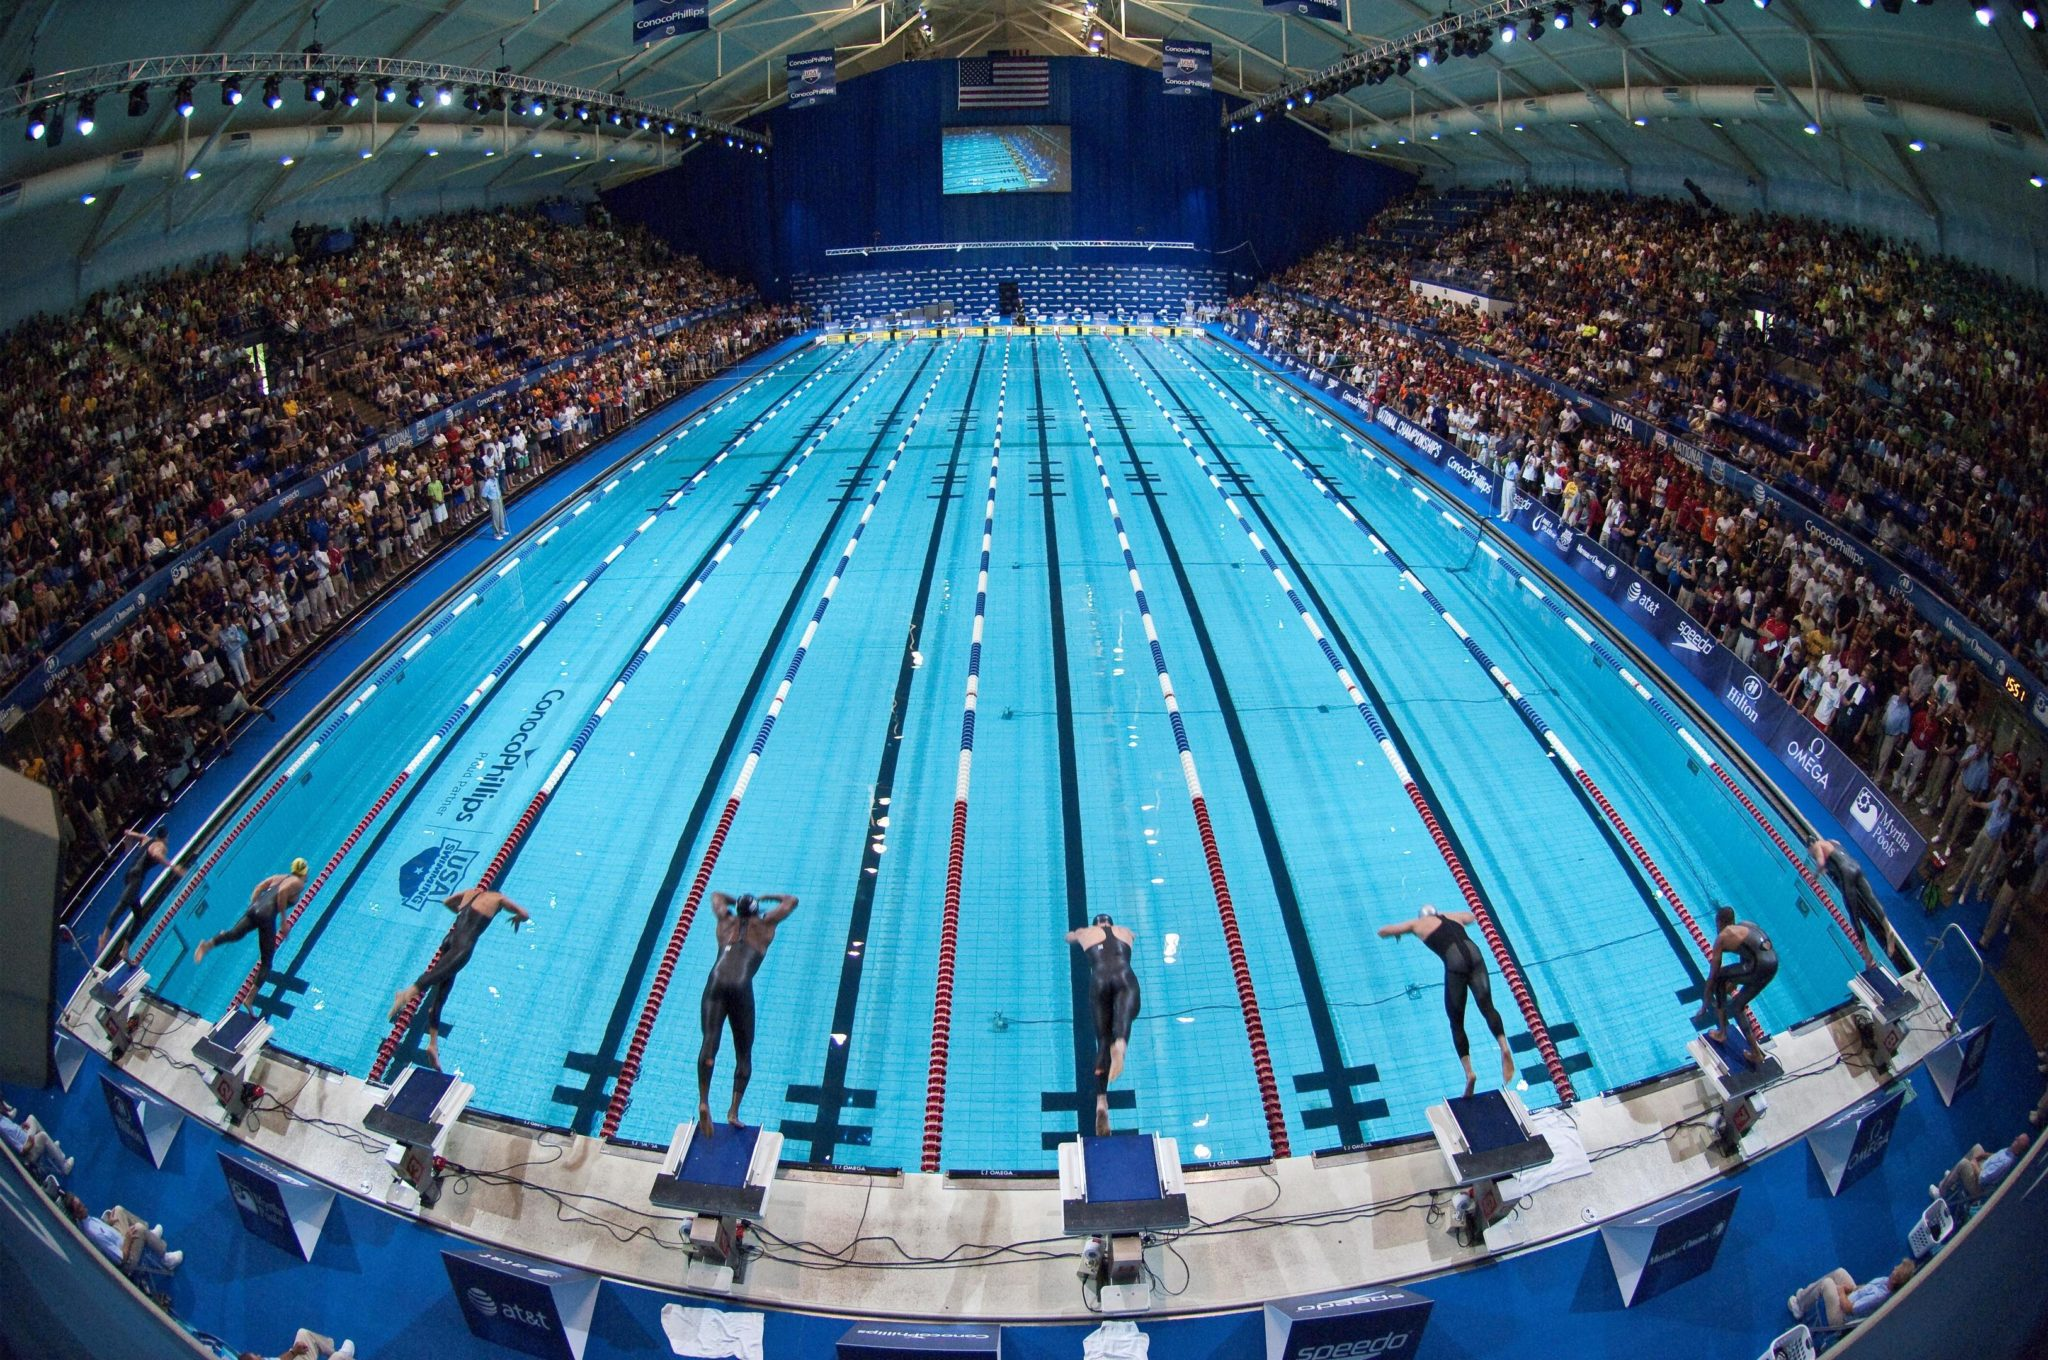 Natatorium Design From A Racer S Point Of View